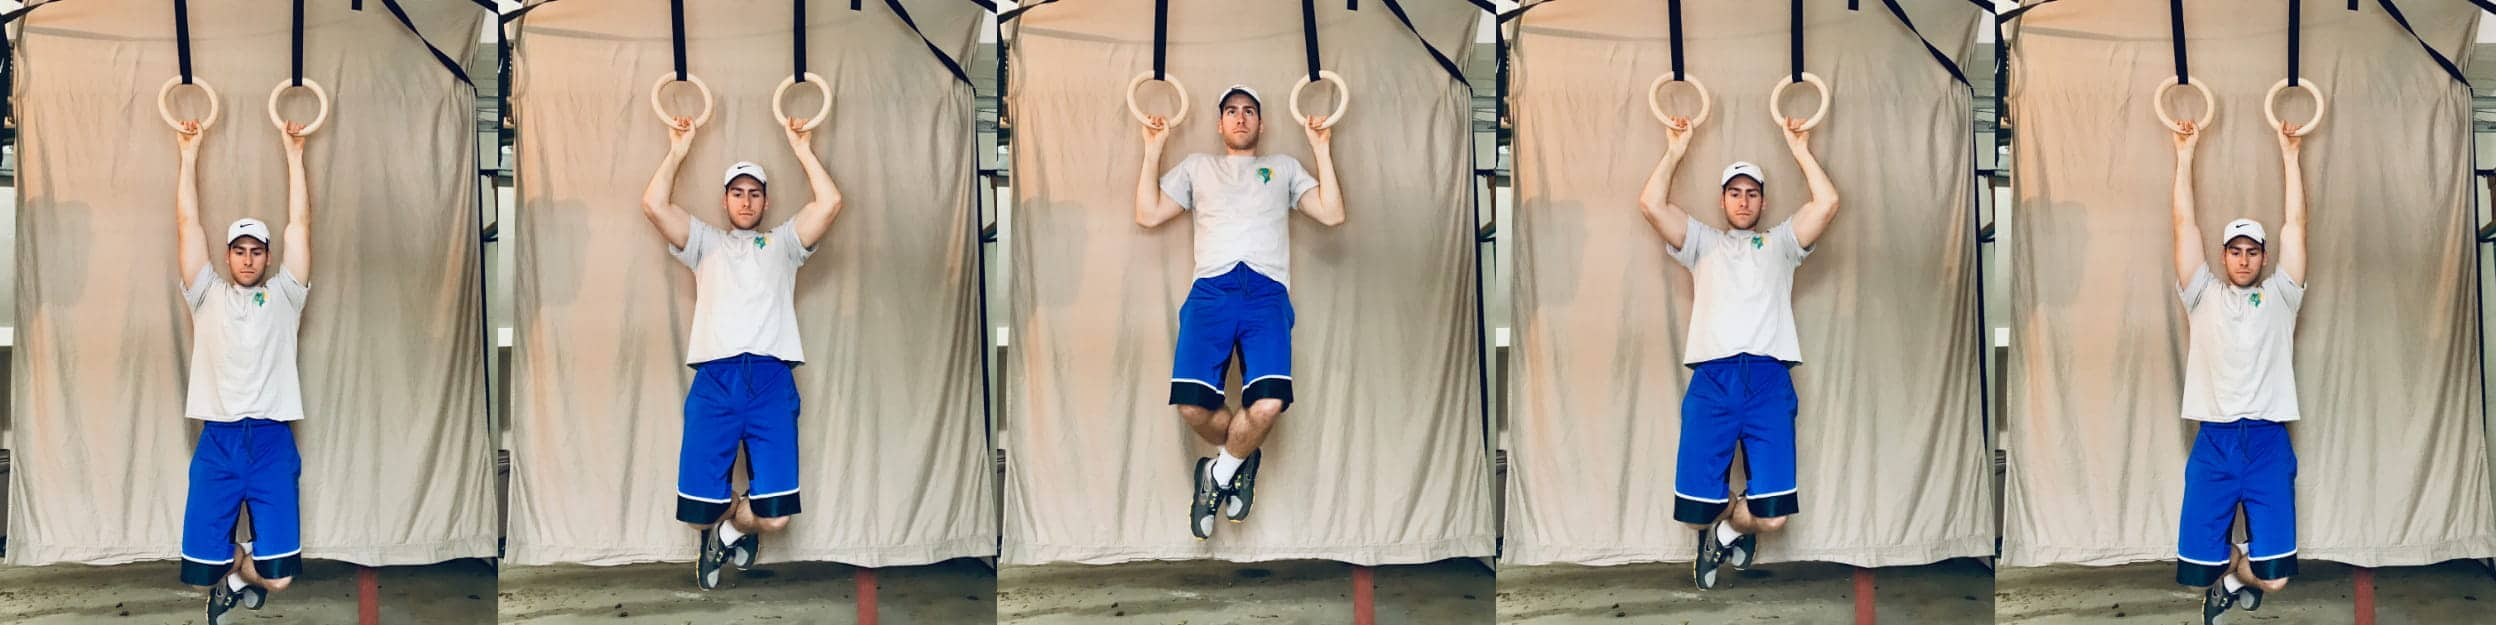 How To Use Gymnastic Rings To Pack On Serious Muscle Mass